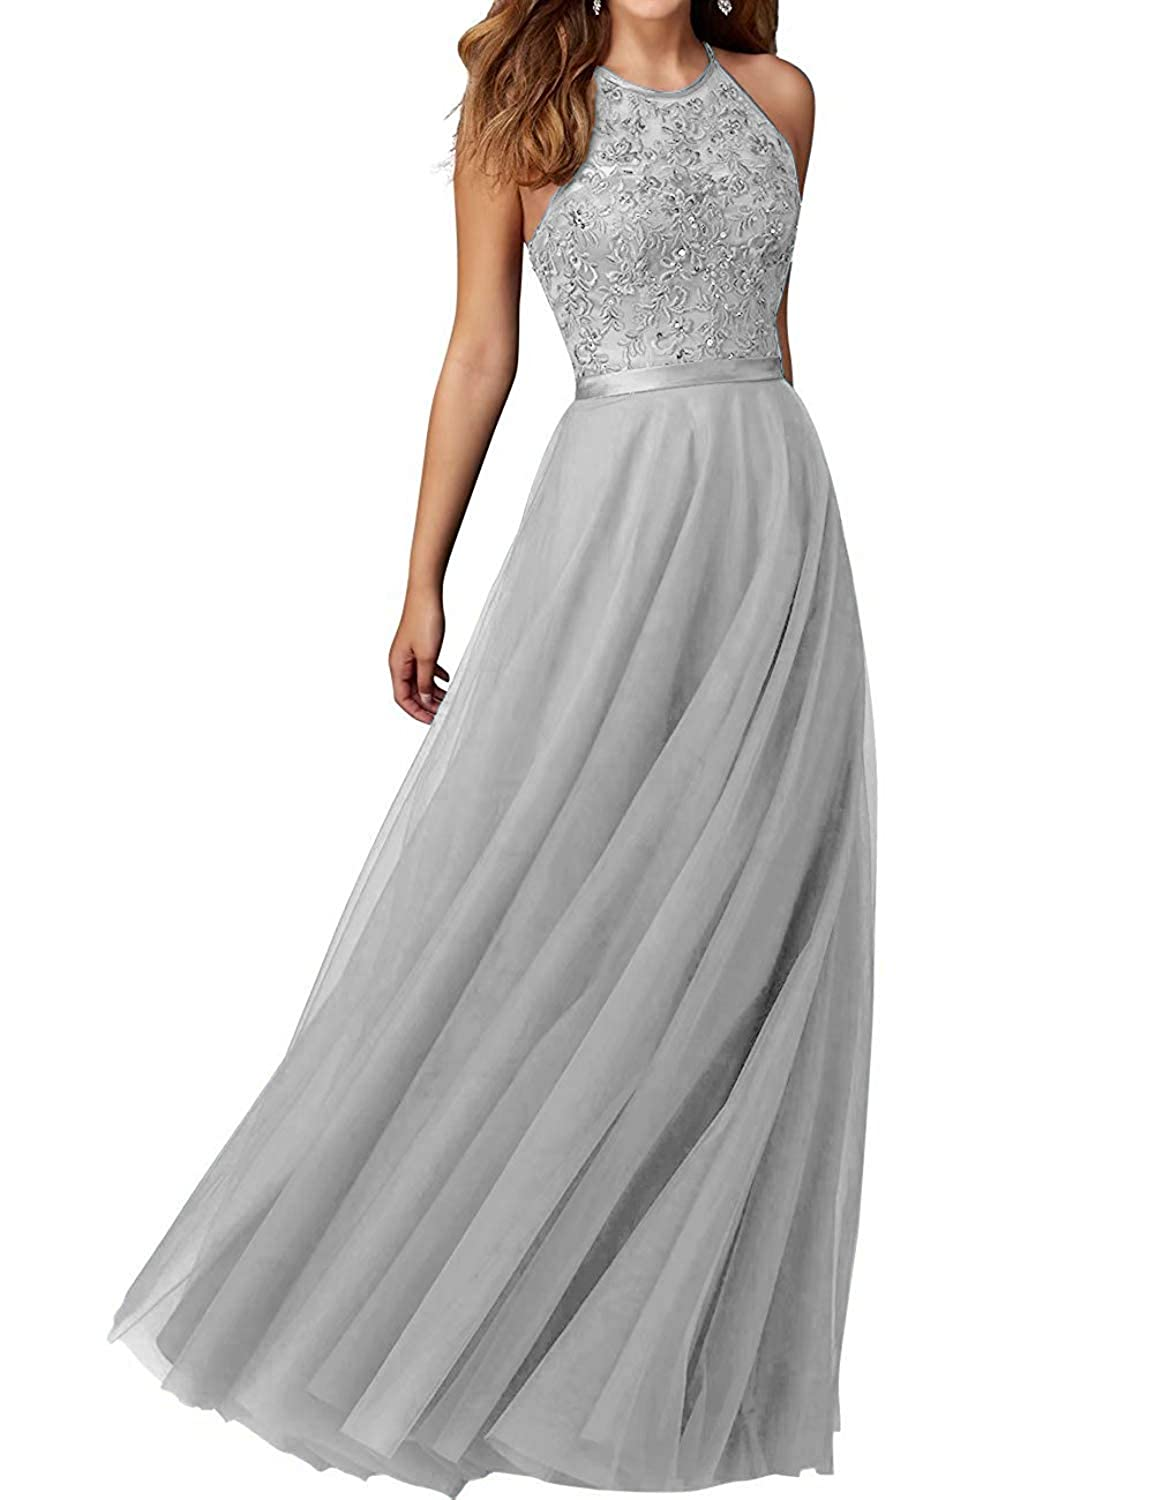 Silver PearlBridal Women's Appliques Halter Tulle Bridesmaid Dresses High Neck Long Evening Formal Gown